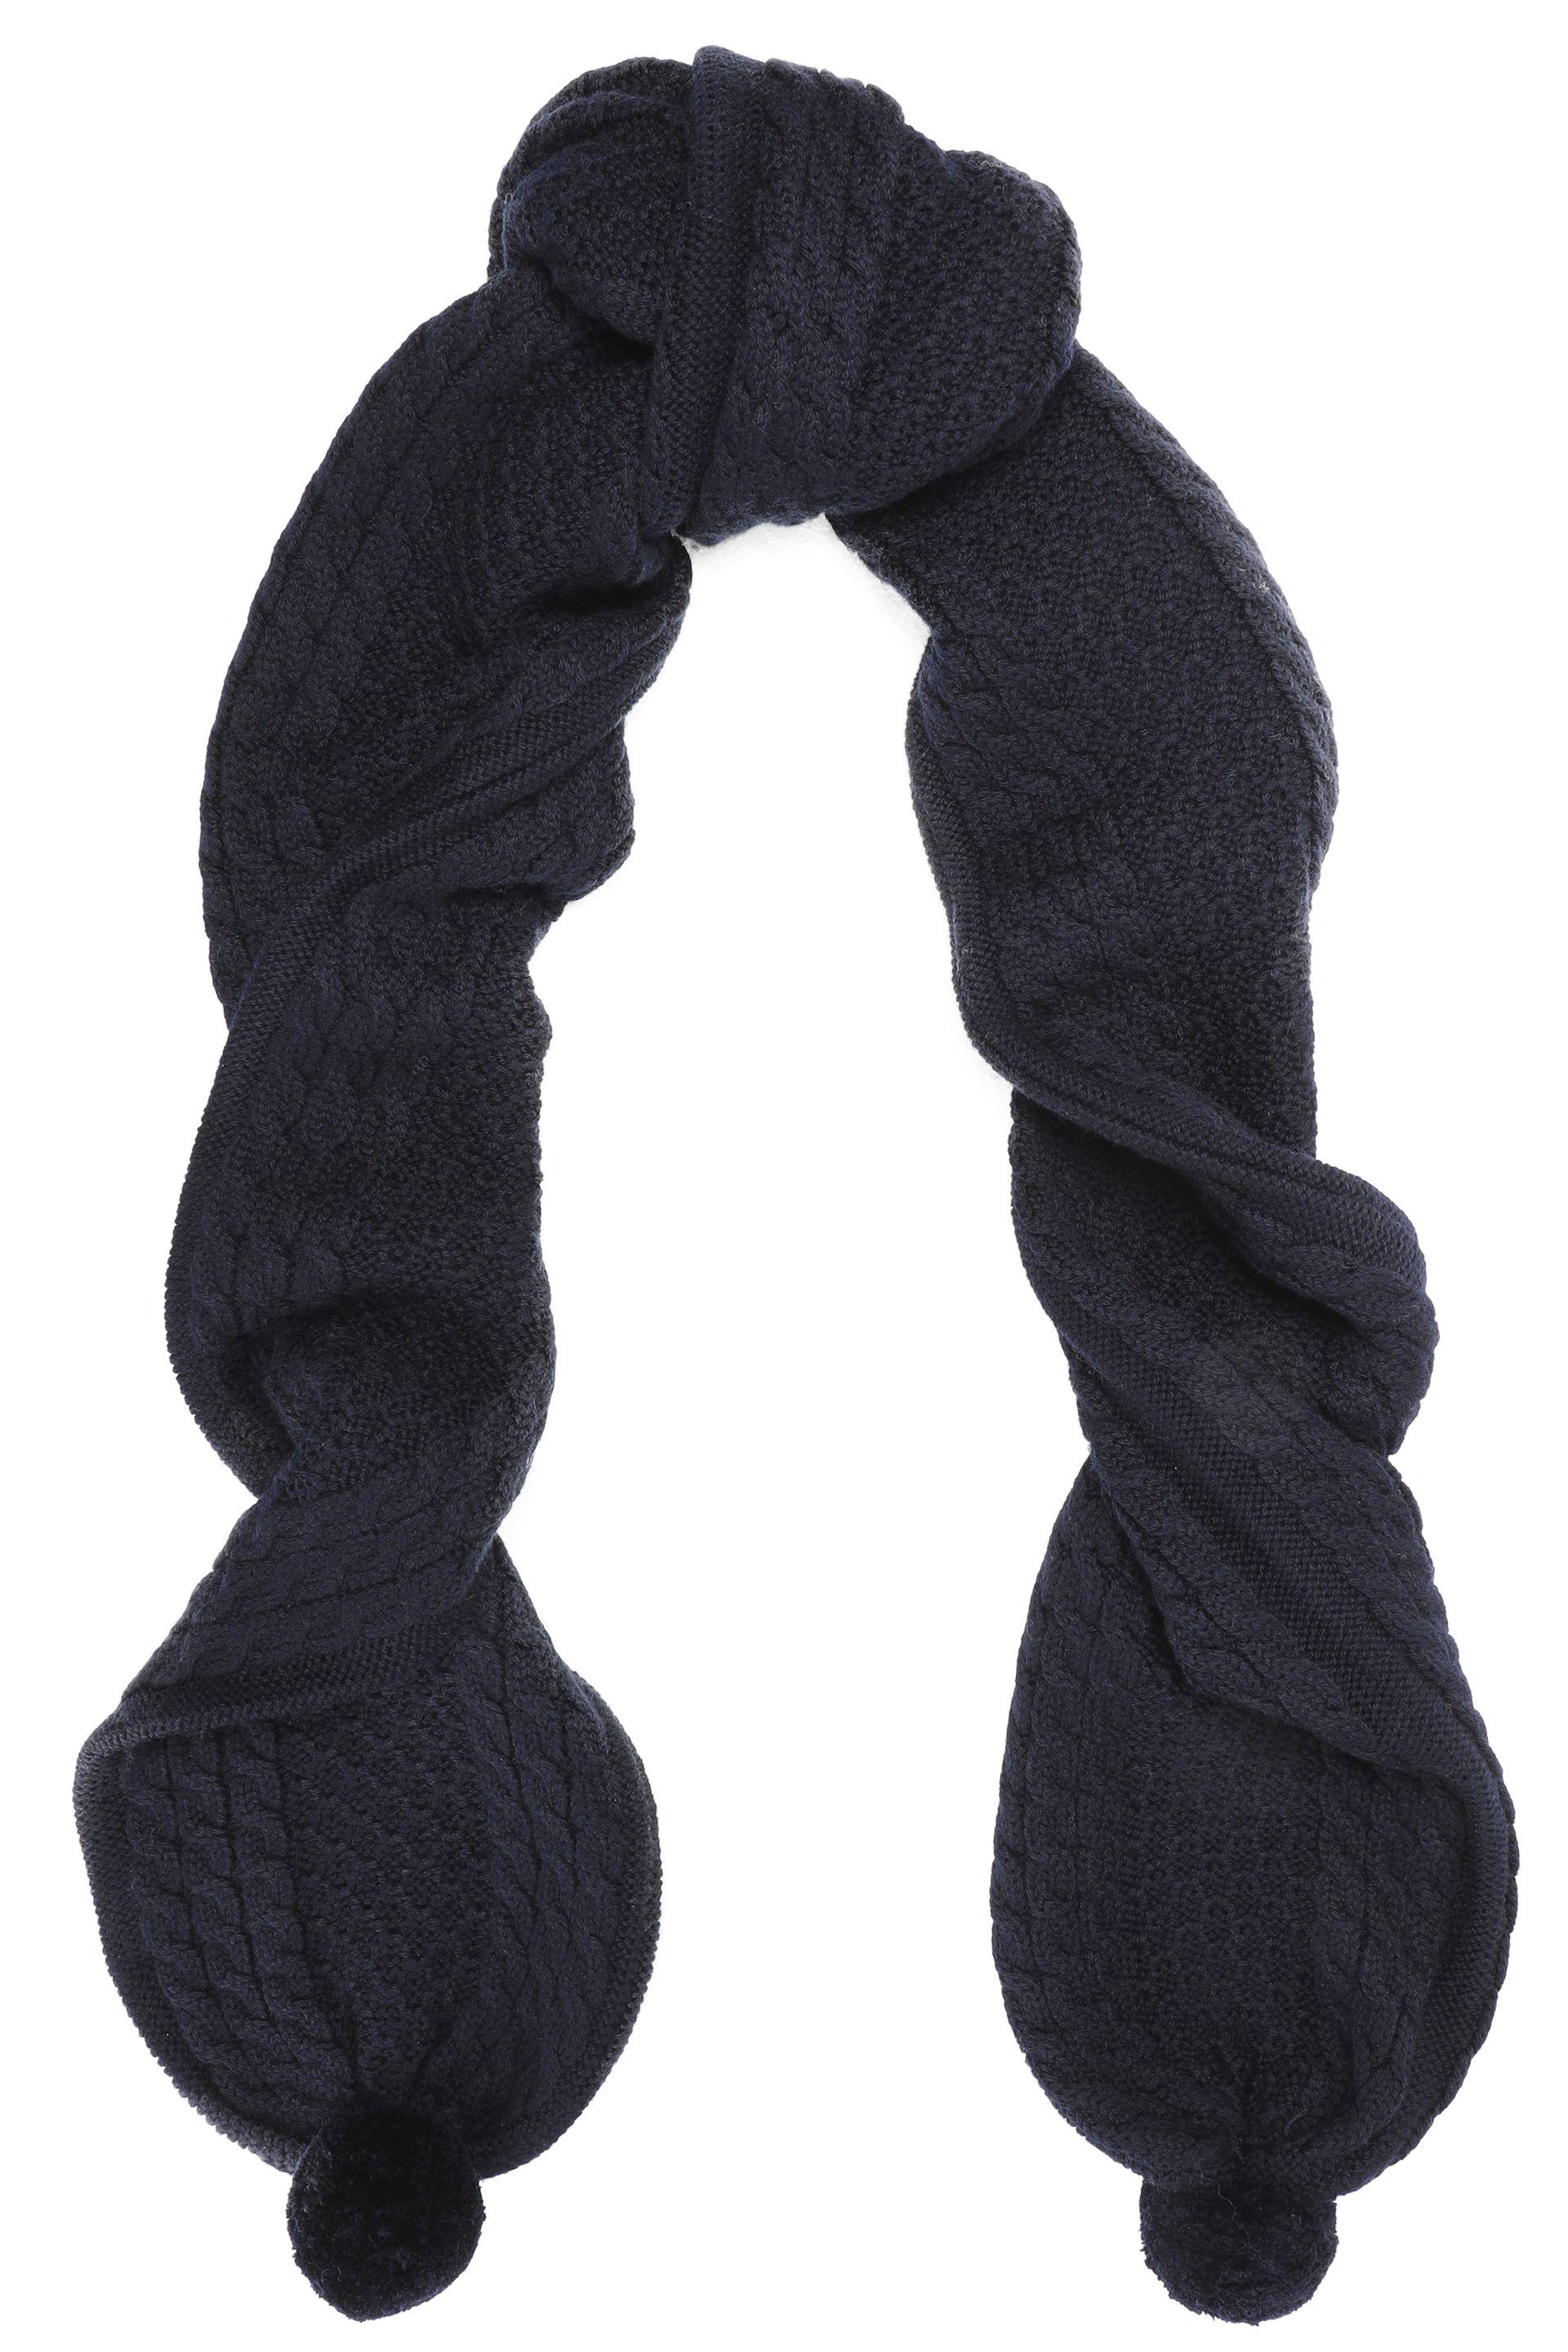 Chinti And Parker Woman Cable-knit Merino Wool Scarf Navy Size Chinti and Parker m4CEMg